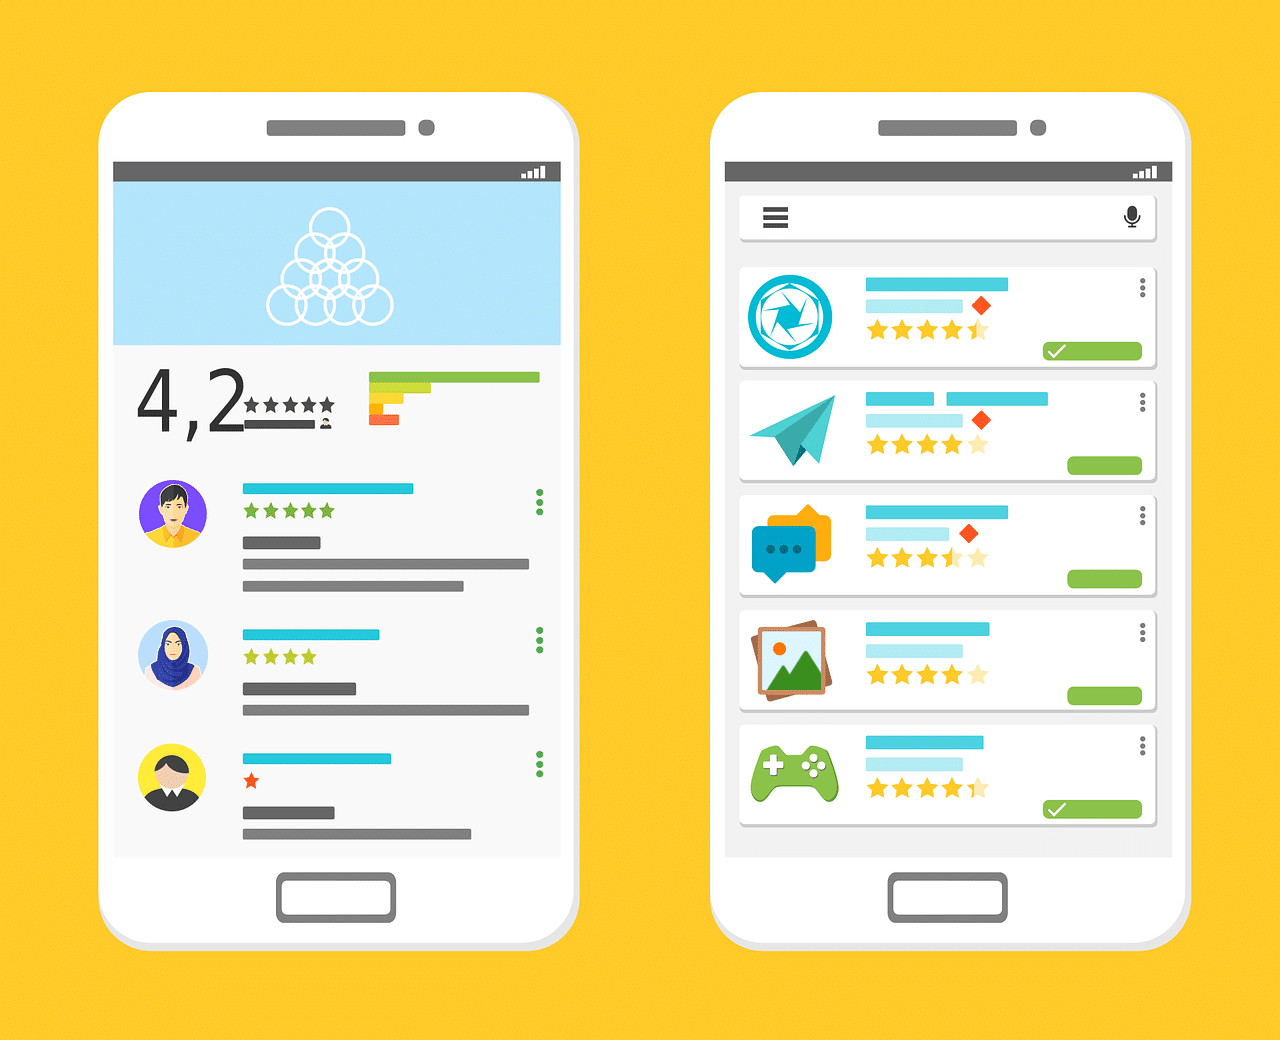 Chat ratings and feedback